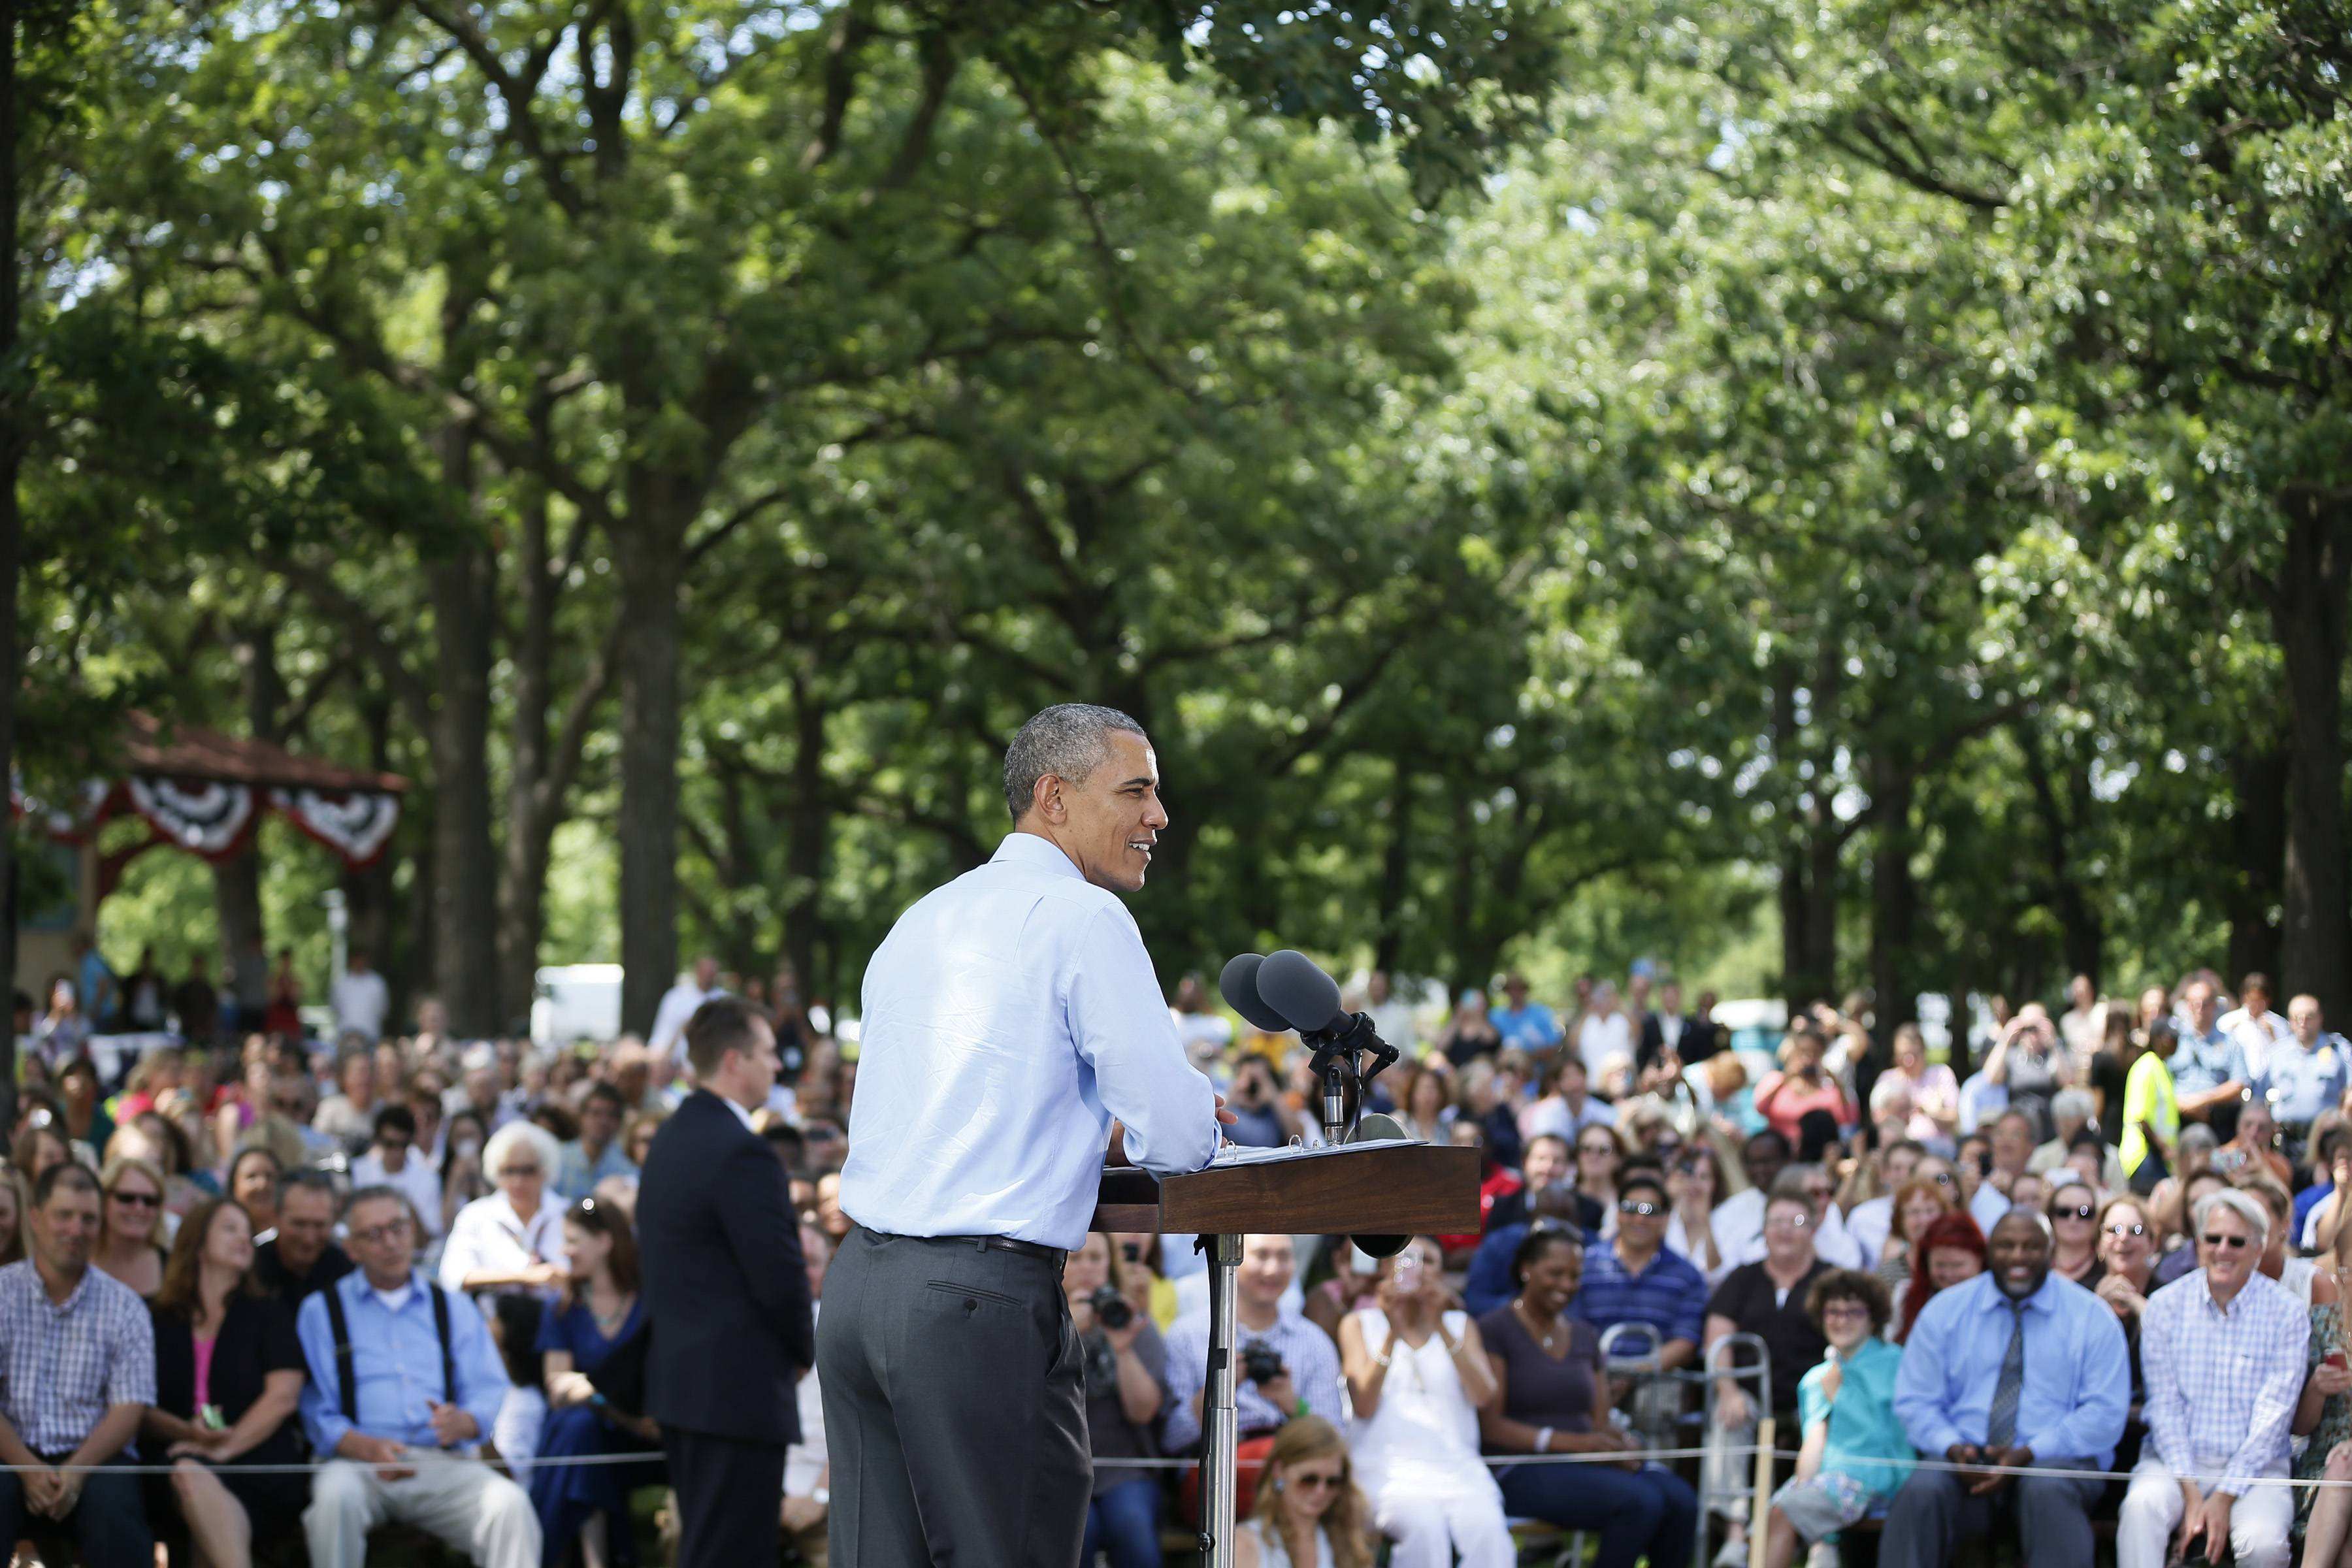 President Barack Obama speaks to an audience Thursday during a town hall meeting at Minnehaha Park in Minneapolis.